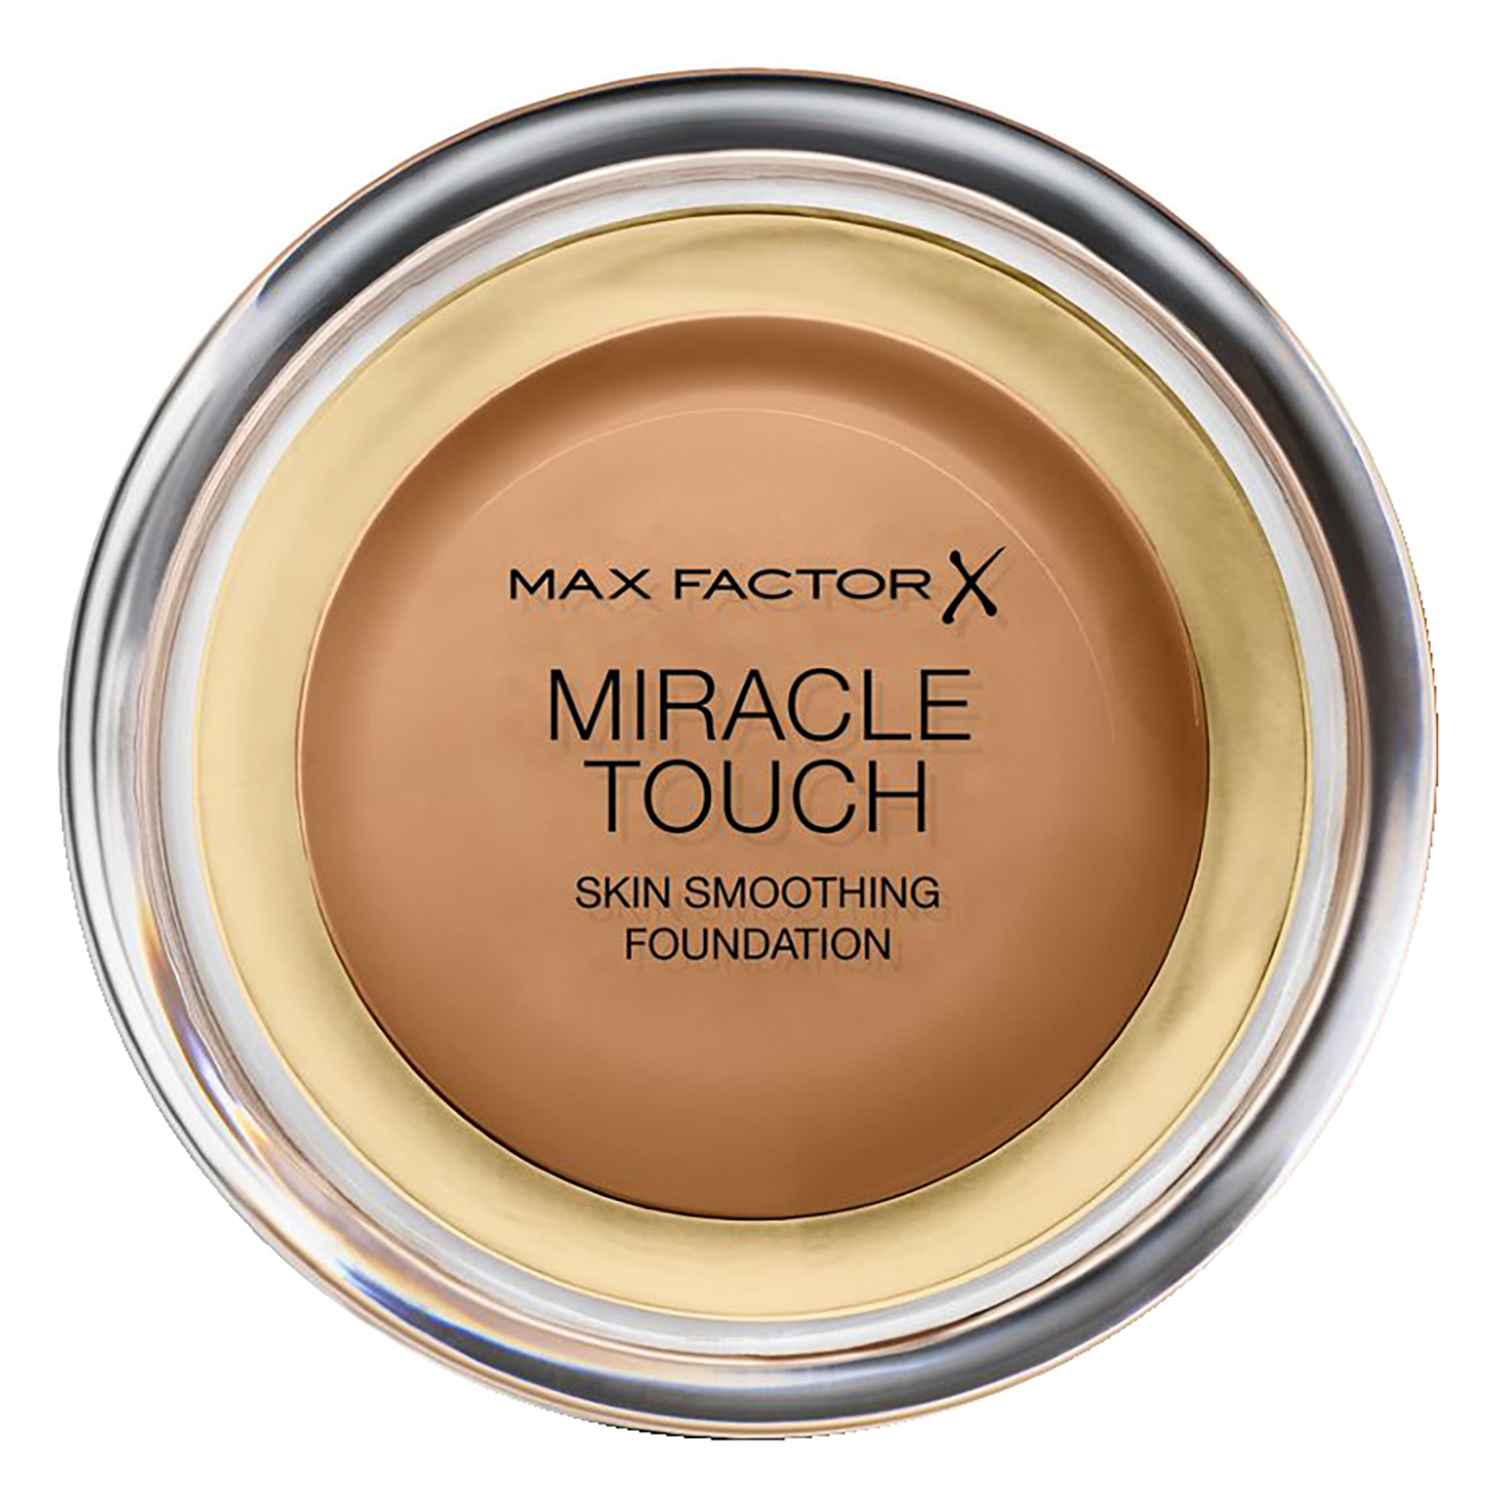 Base de maquillaje nº 85 Caramel Miracle Touch Max Facror 1 ud.  -